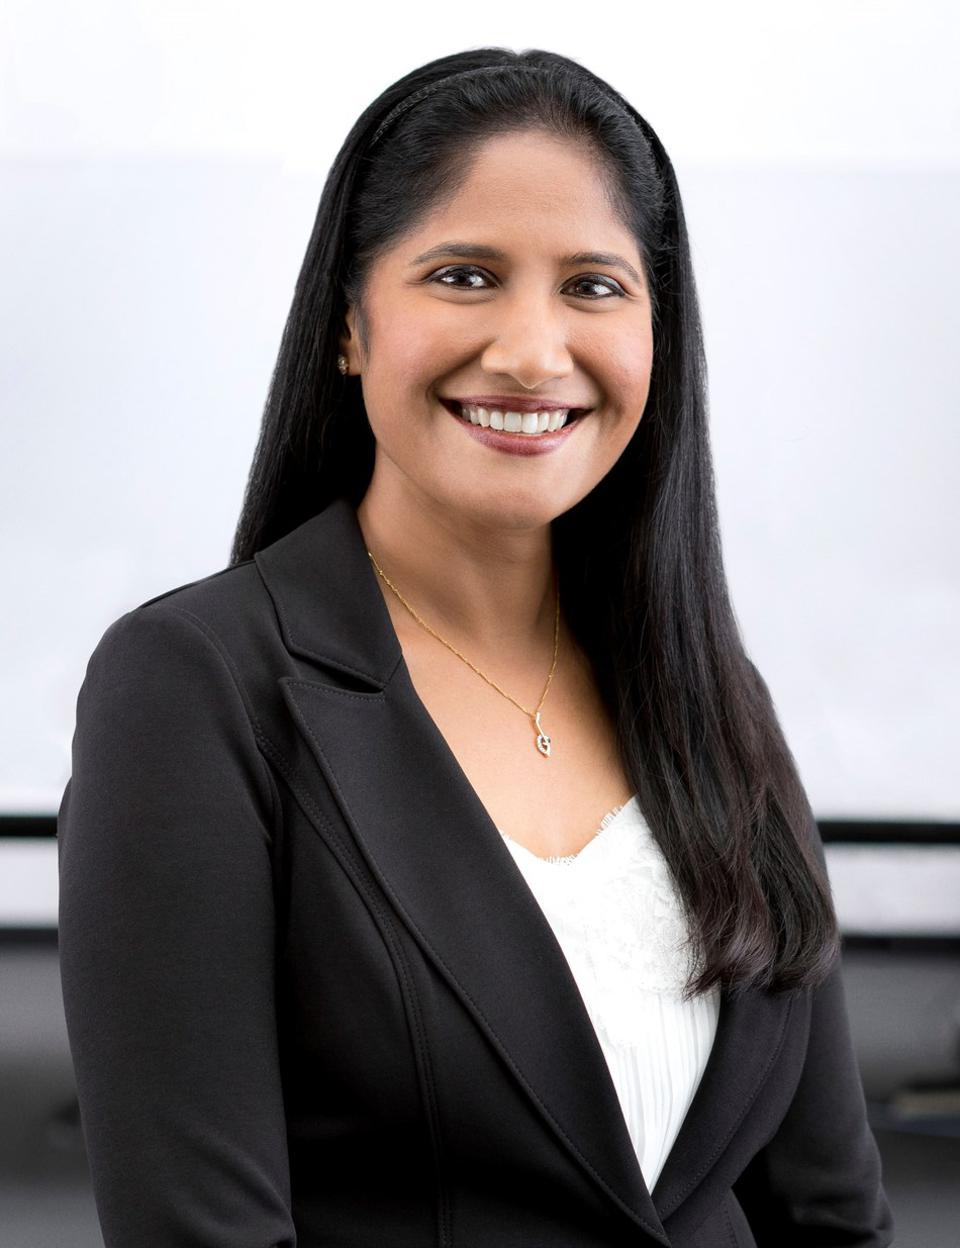 This is a portrait photo of Bhavani Amirthalingam, Ameren Corporation senior vice president.